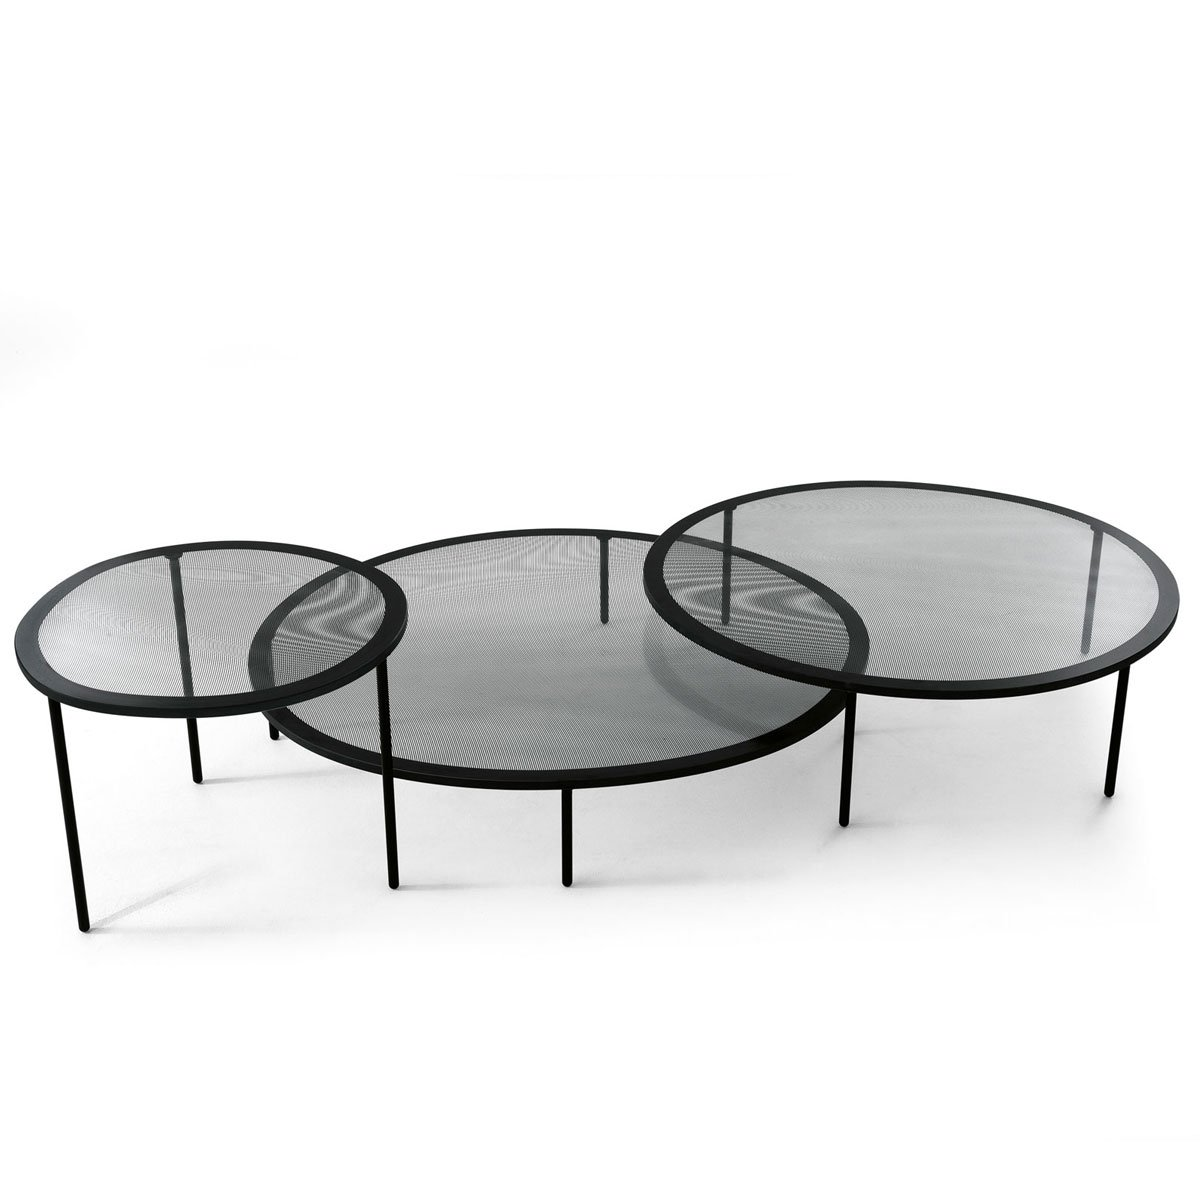 Taffy Glass And Metal Coffee Table By Gallotti Radice Klarity Glass Furniture